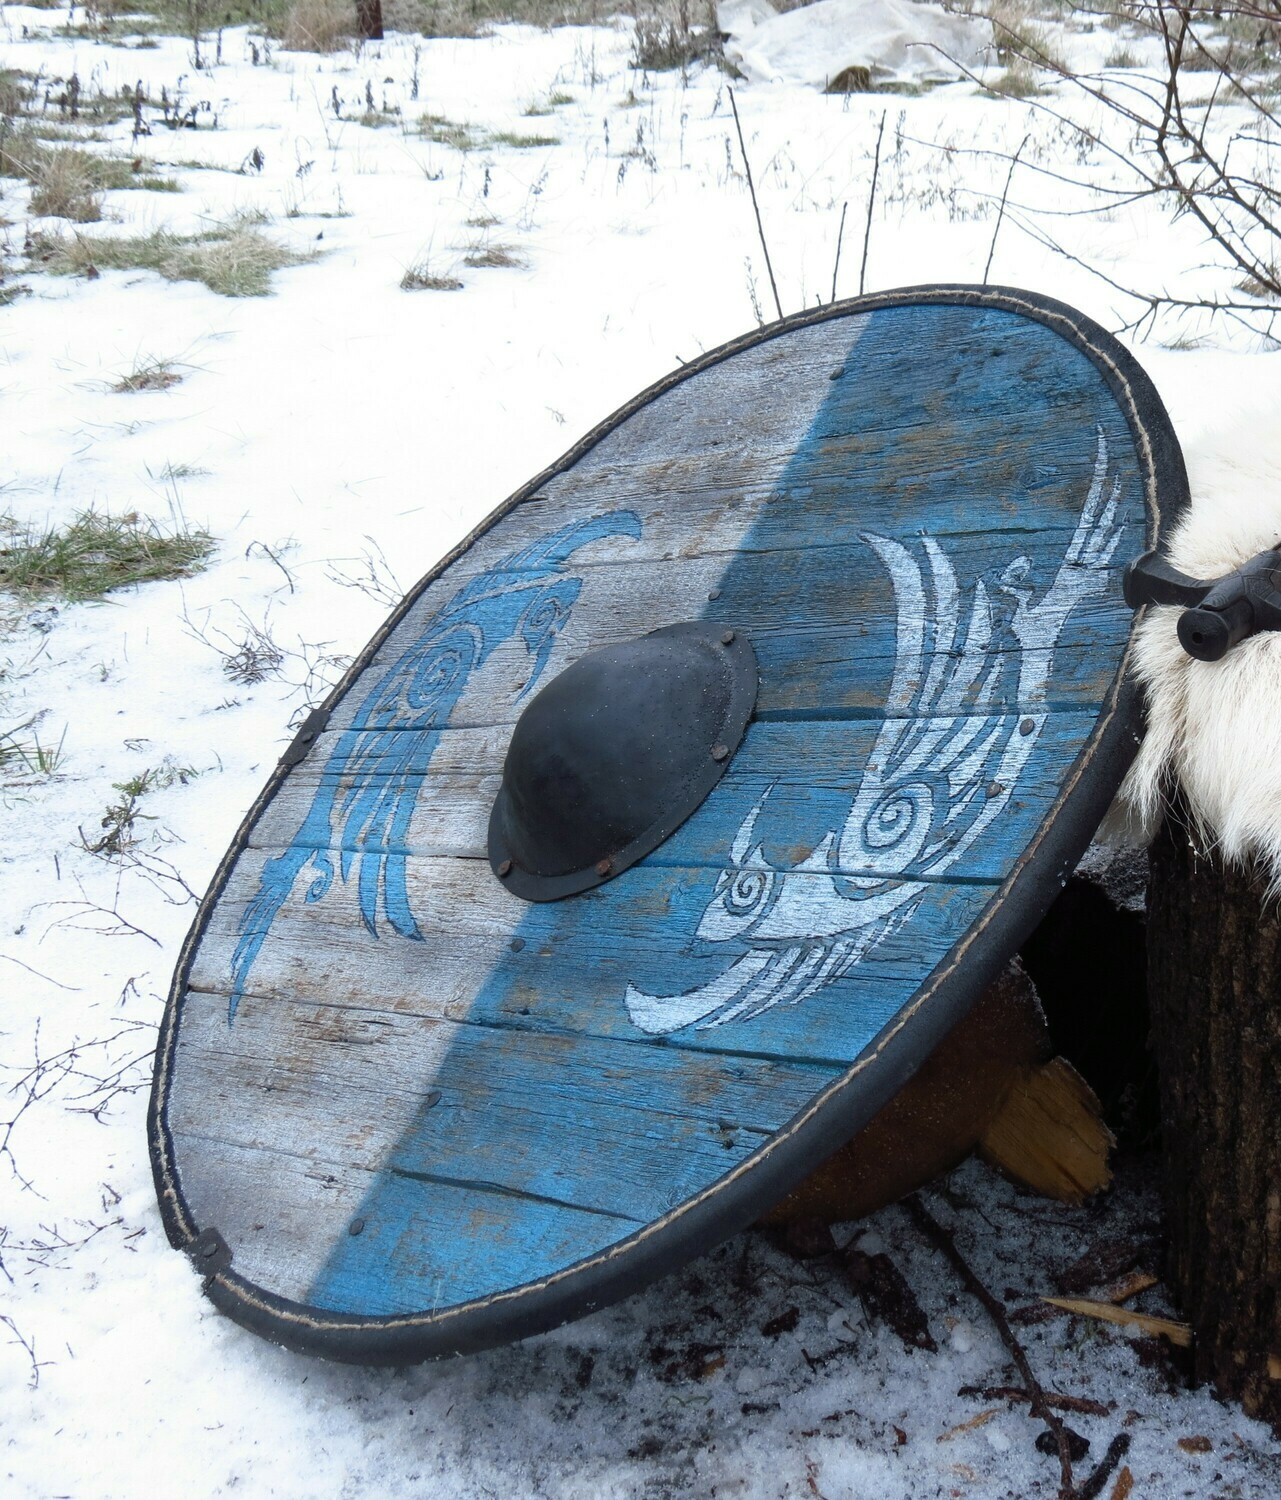 Viking Round Shield, Fully Functional Battle Shield Replica with Ancient look, D. 80 cm.